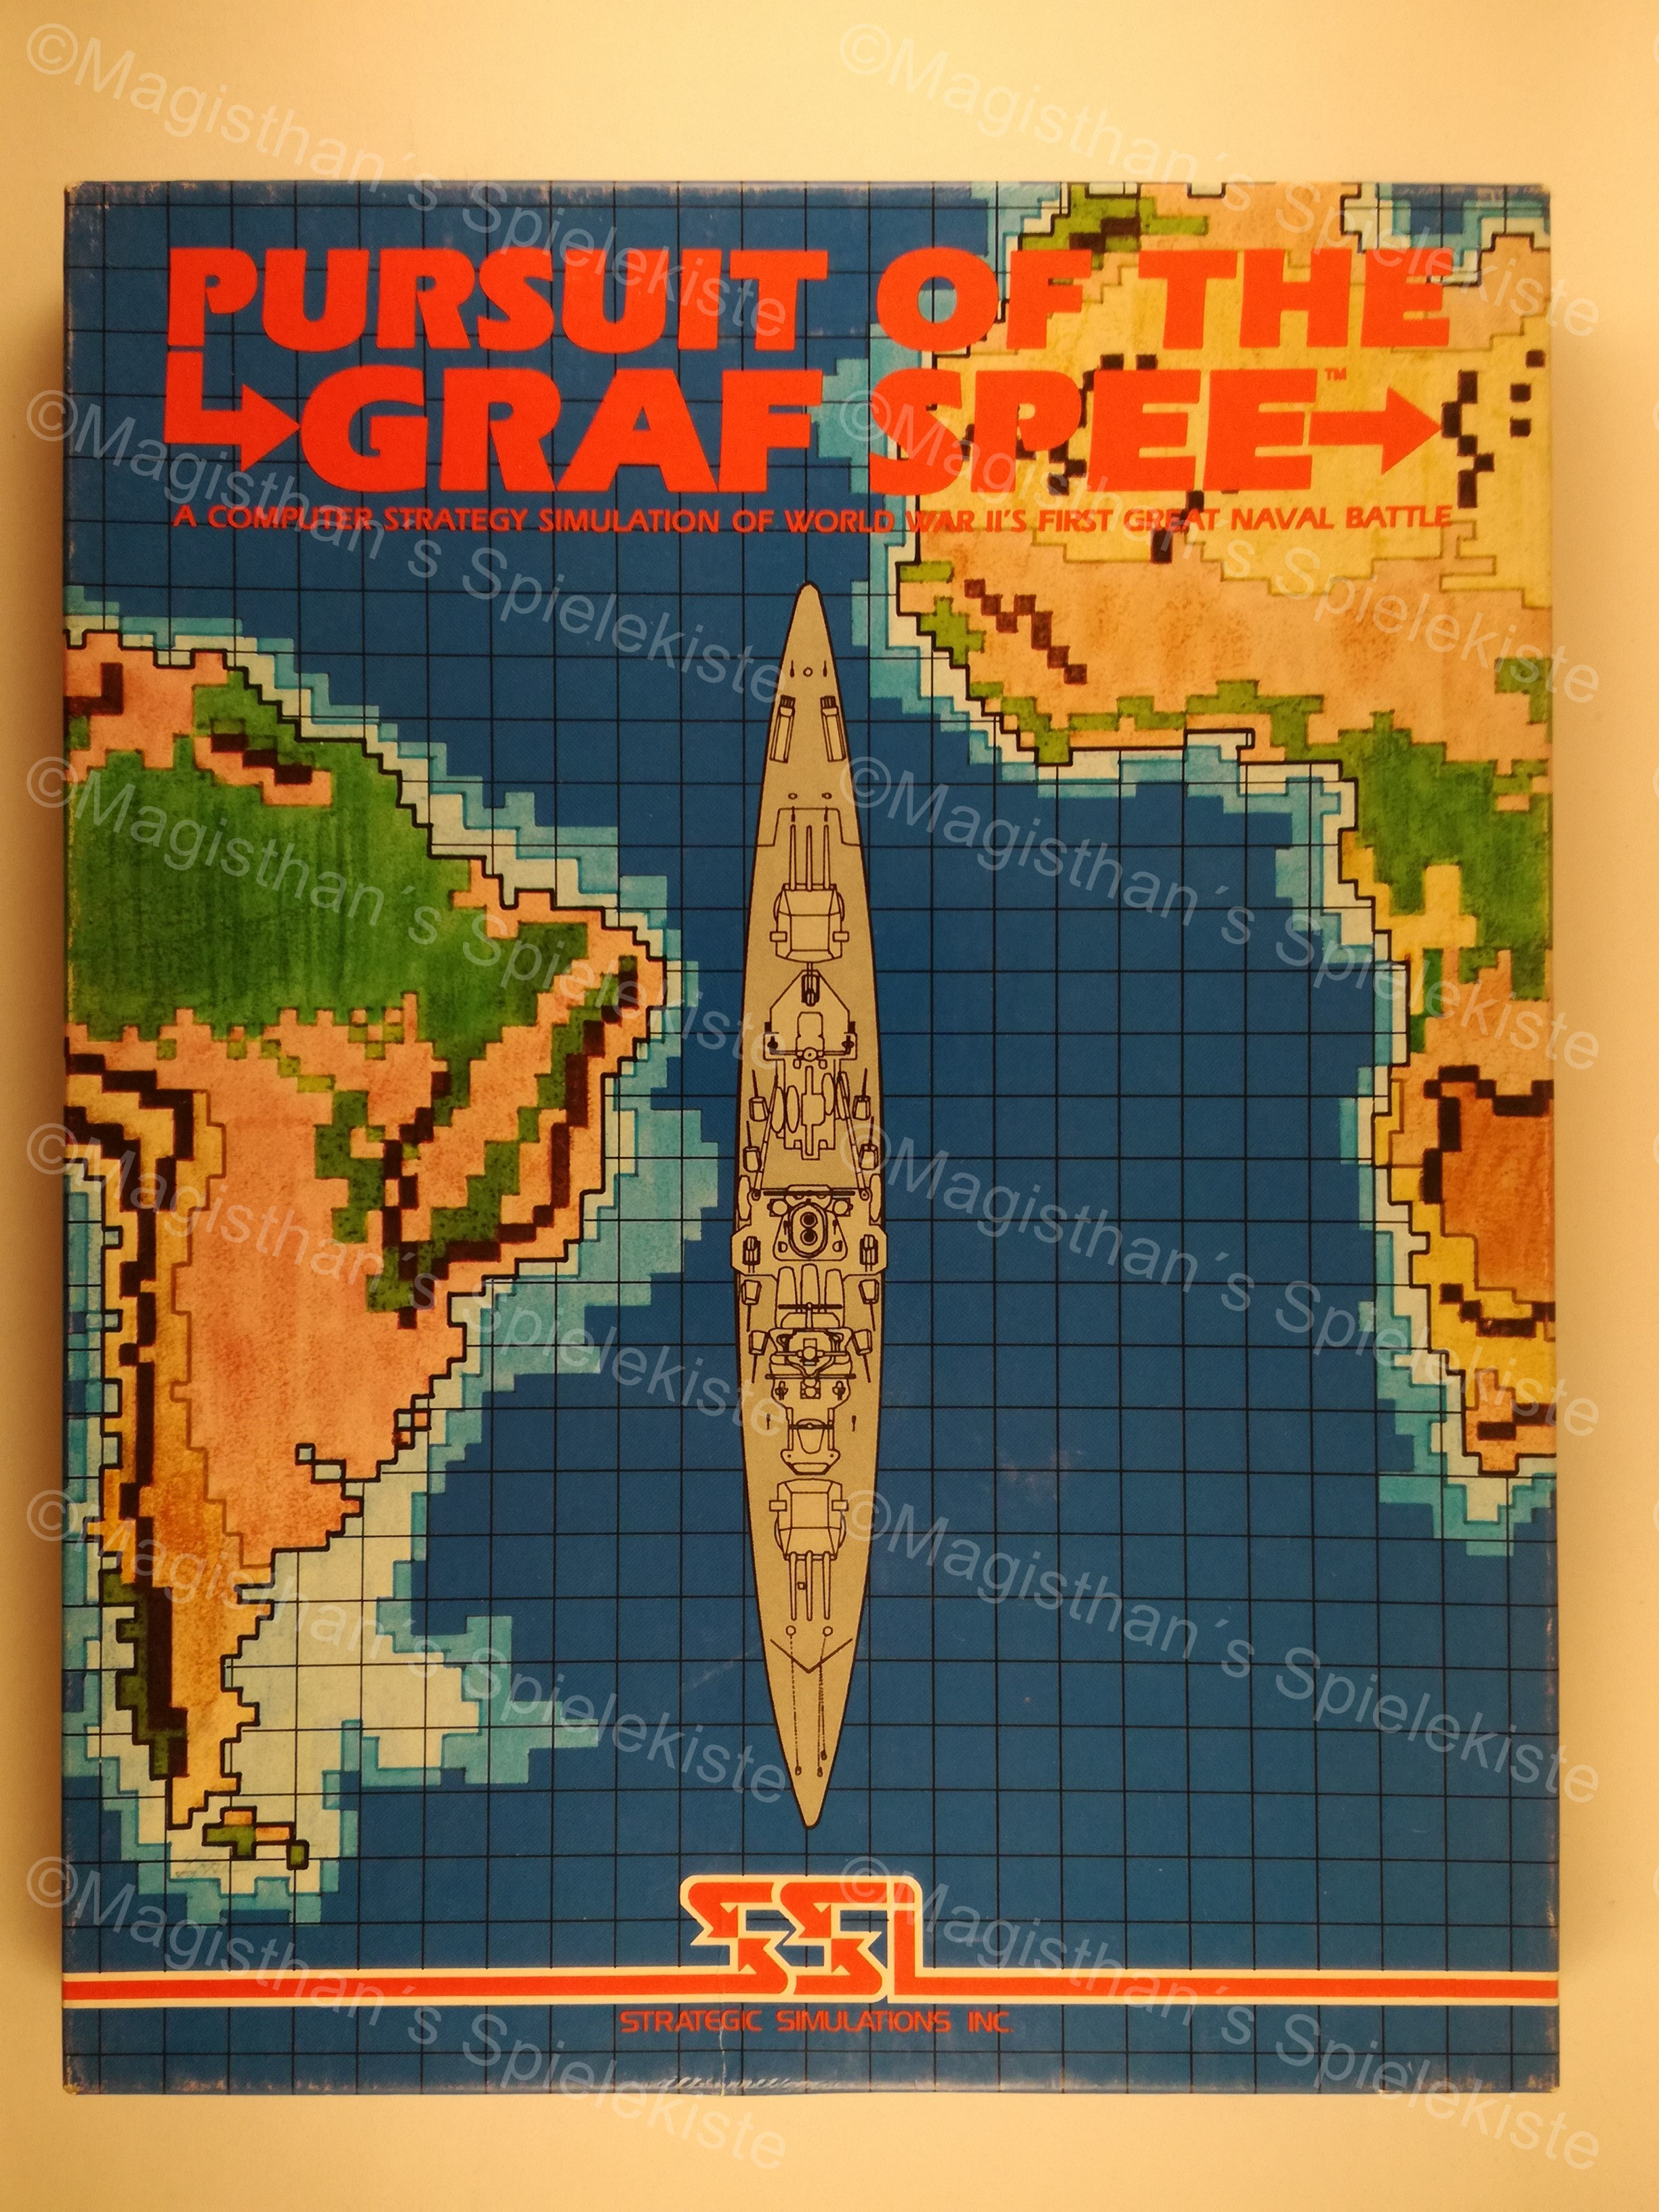 Pursuit_of_the_Graf_Spee1.jpg